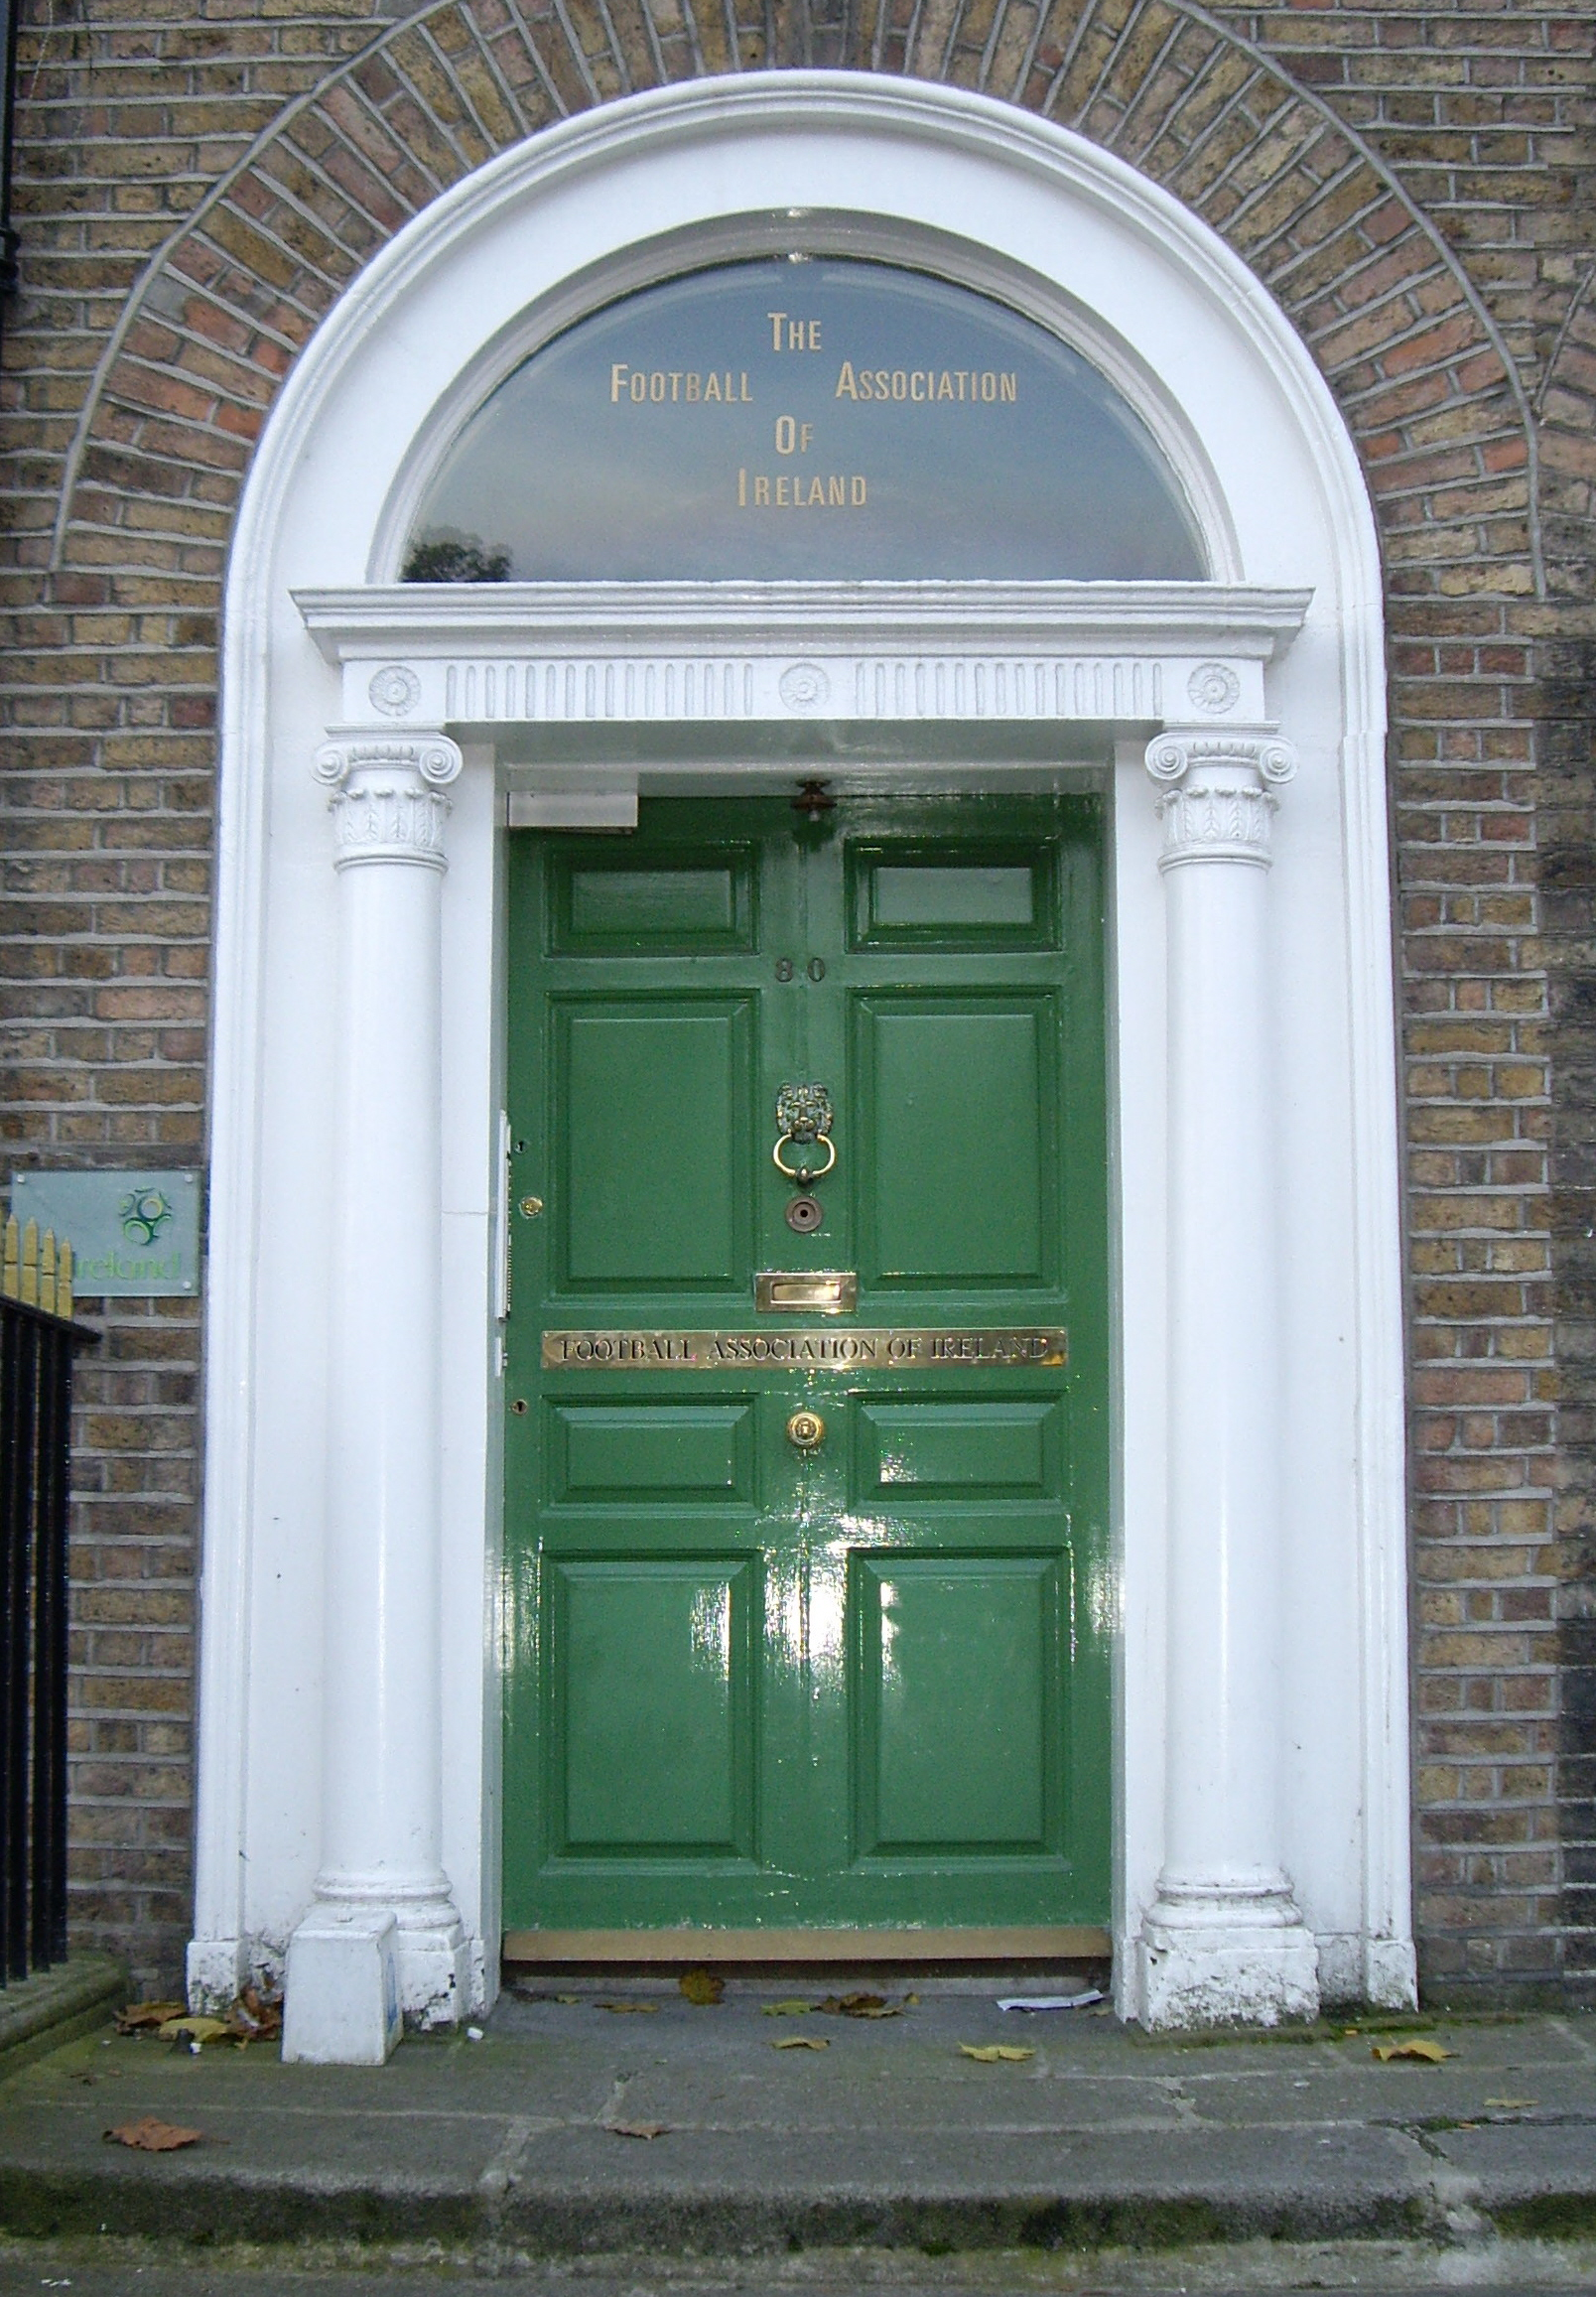 File:FAI green door.jpg - Wikimedia Commons